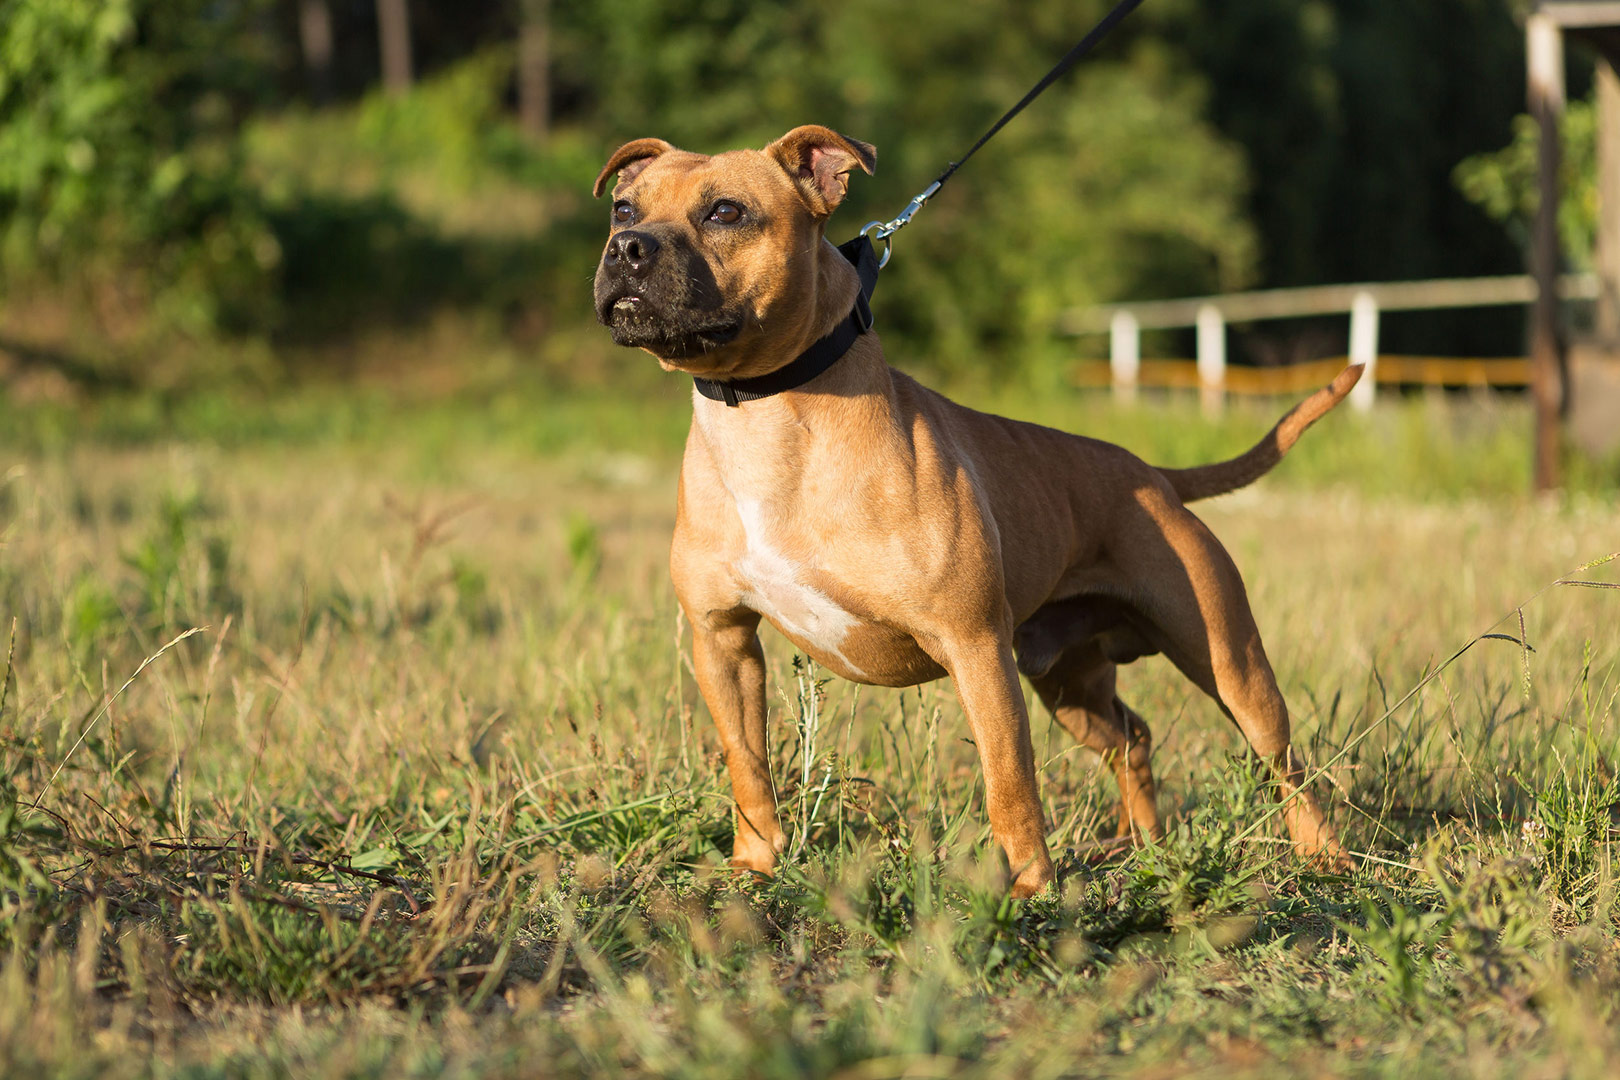 Staffordshire Bull Terrier out for a walk